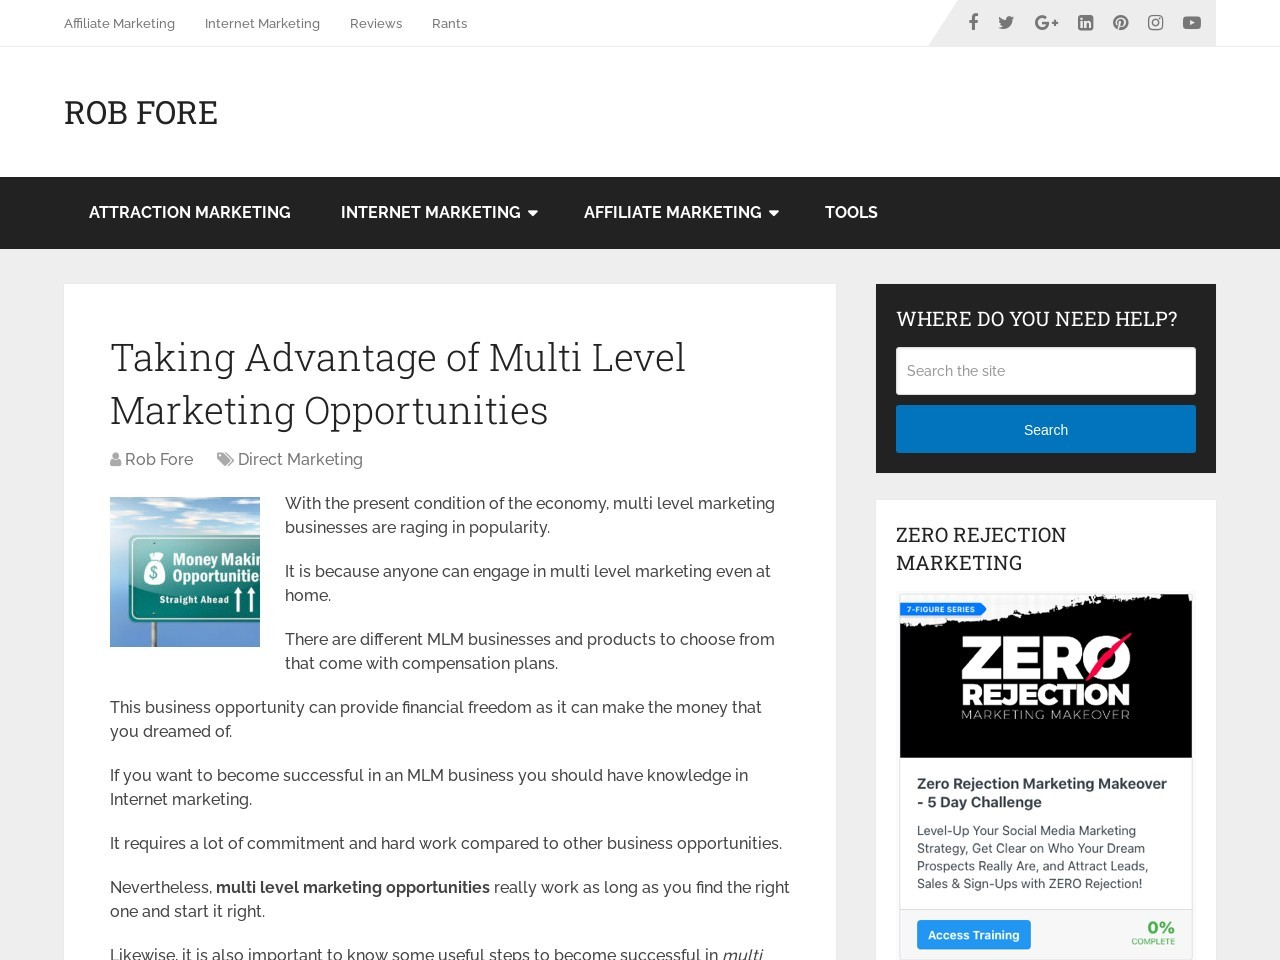 Taking Advantage of Multi Level Marketing Opportunities